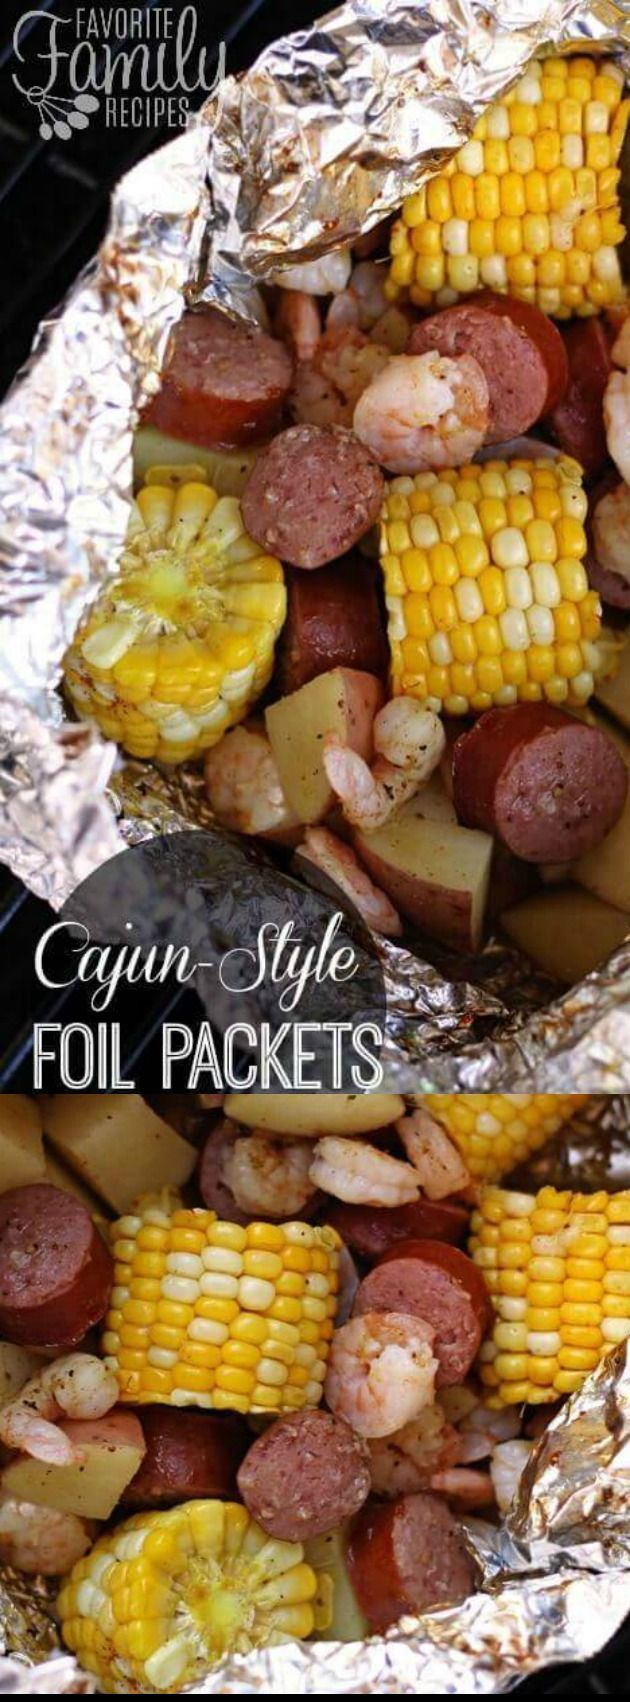 I like this These Cajun Type Grill Foil Packets from Favourite Household Recipes make the perfe...